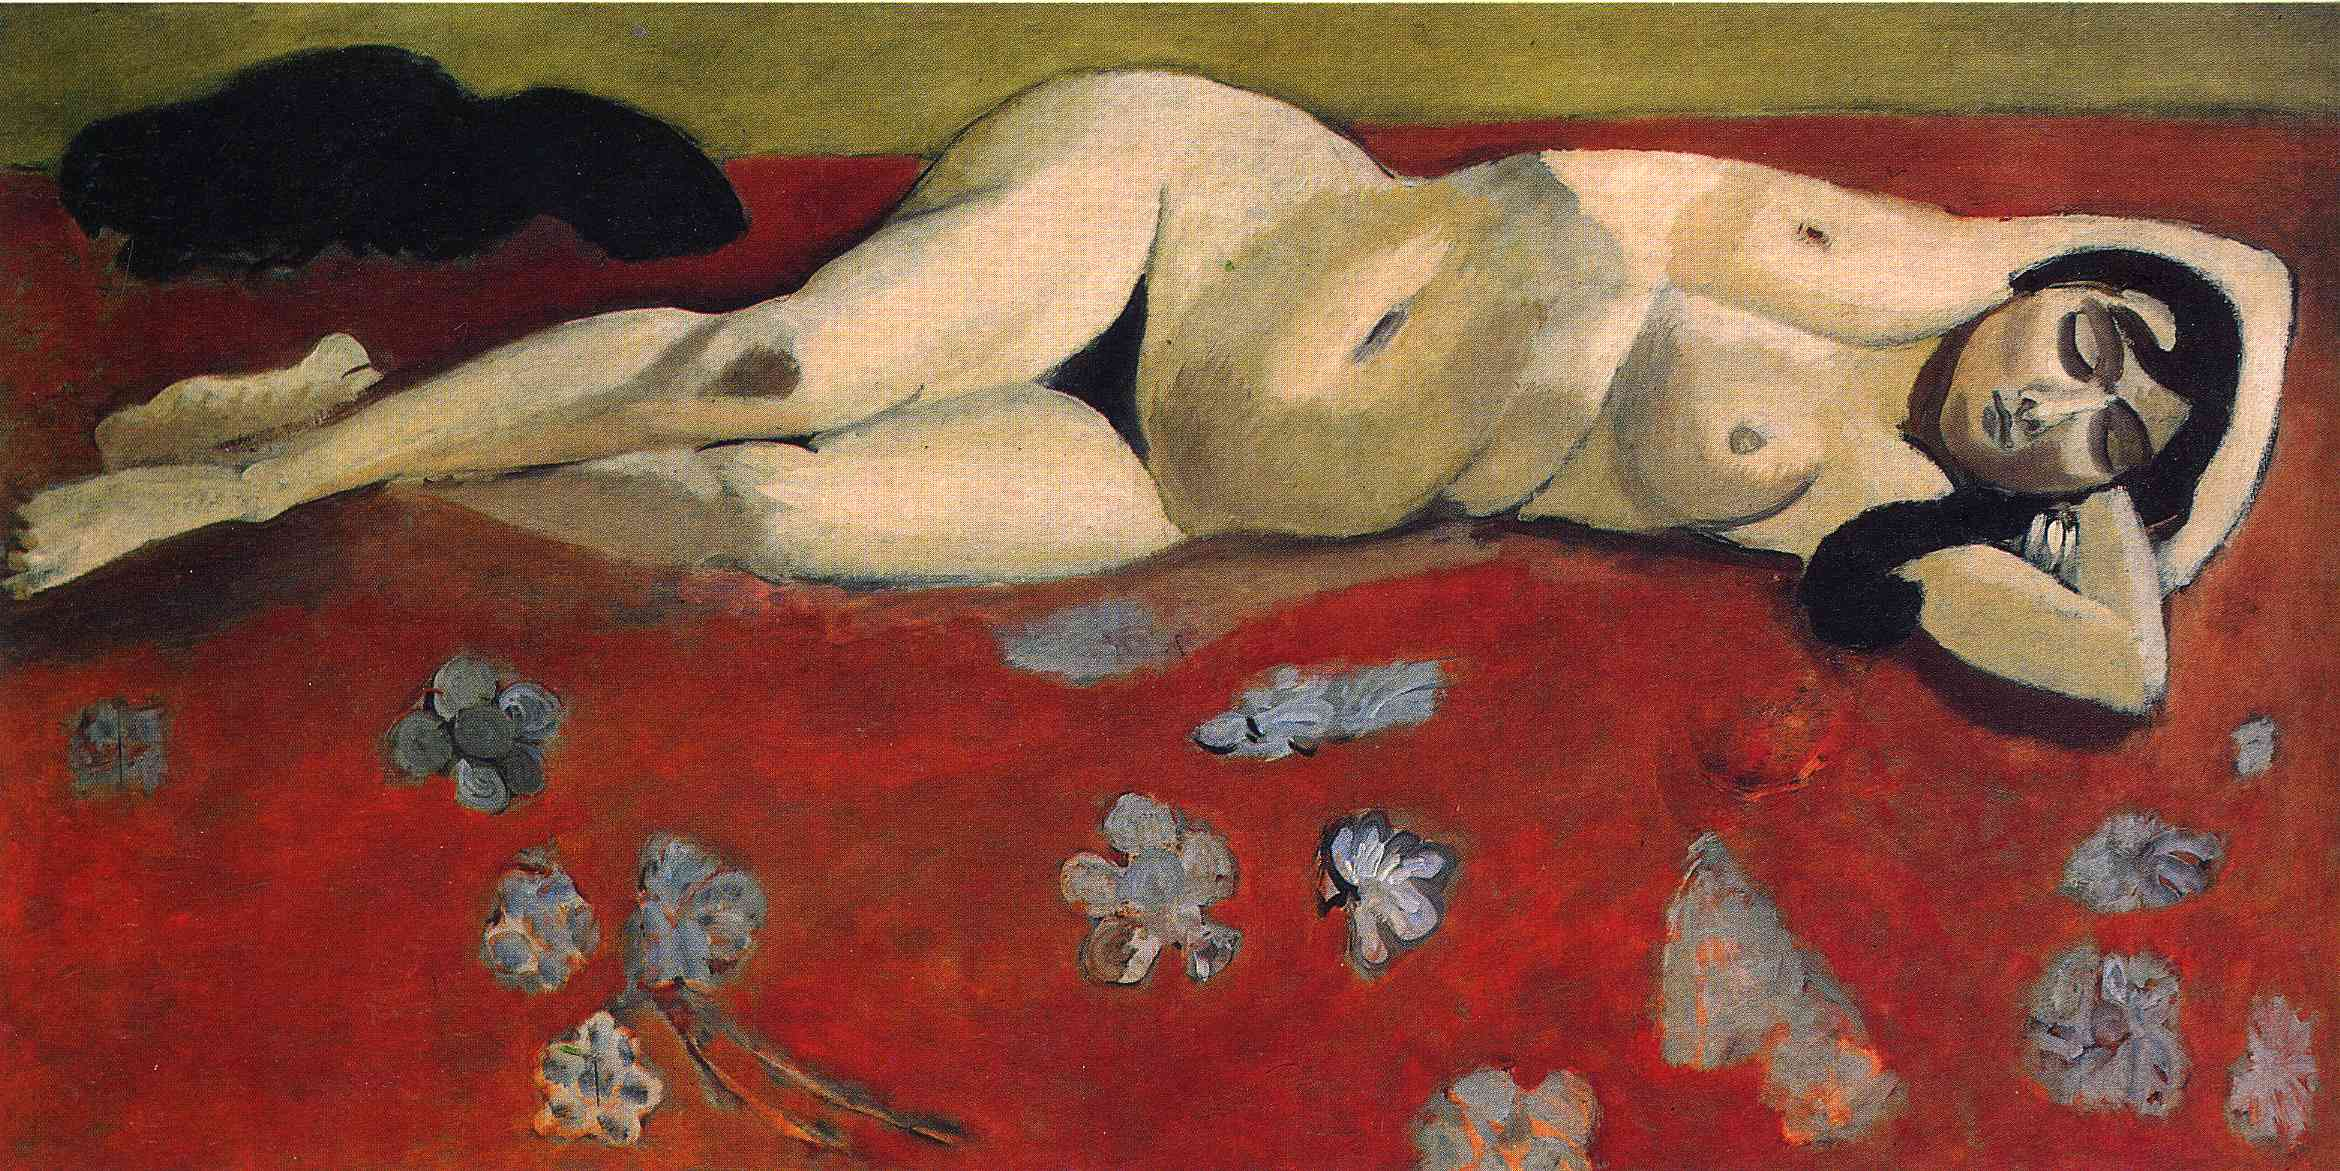 sleeping-nude-on-a-red-background-1916.jpg